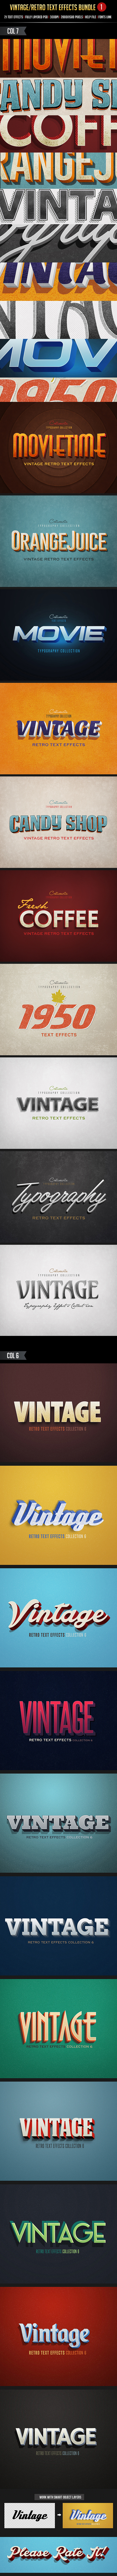 Vintage/Retro Text Effects Bundle 1 - Text Effects Actions